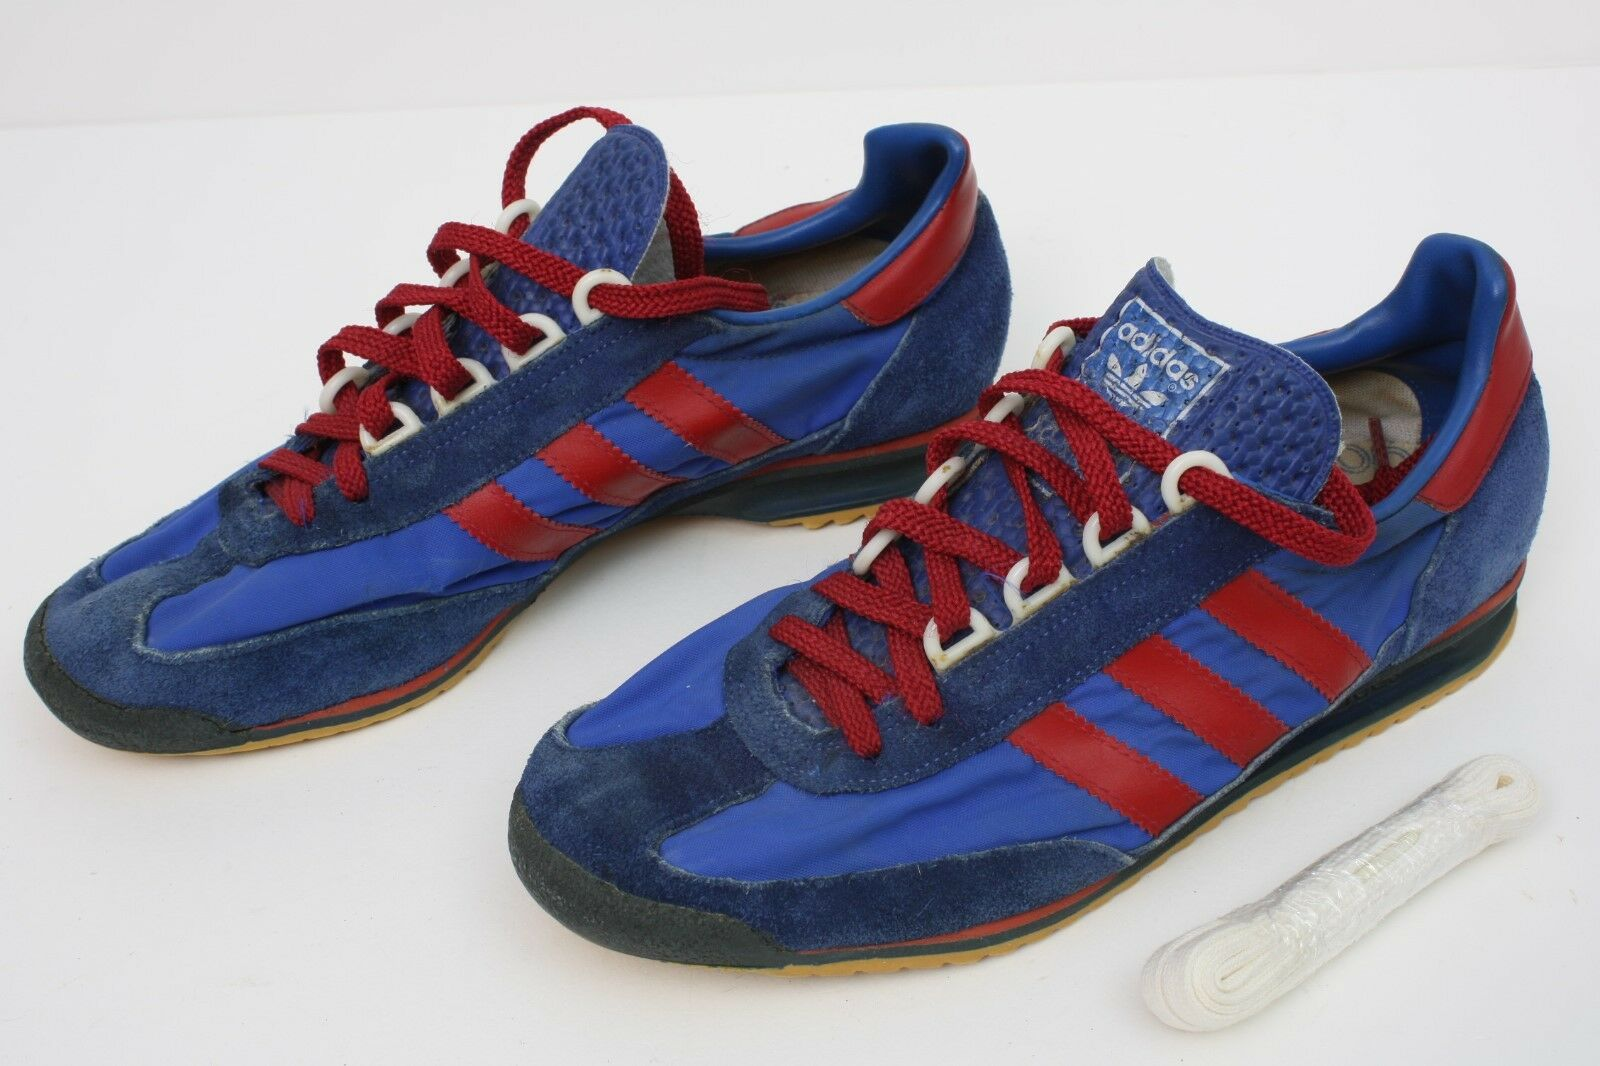 1976 VINTAGE ADIDAS SL76 Trainer bluee Red stripes US sz 6.5 (37) Starsky Hutch